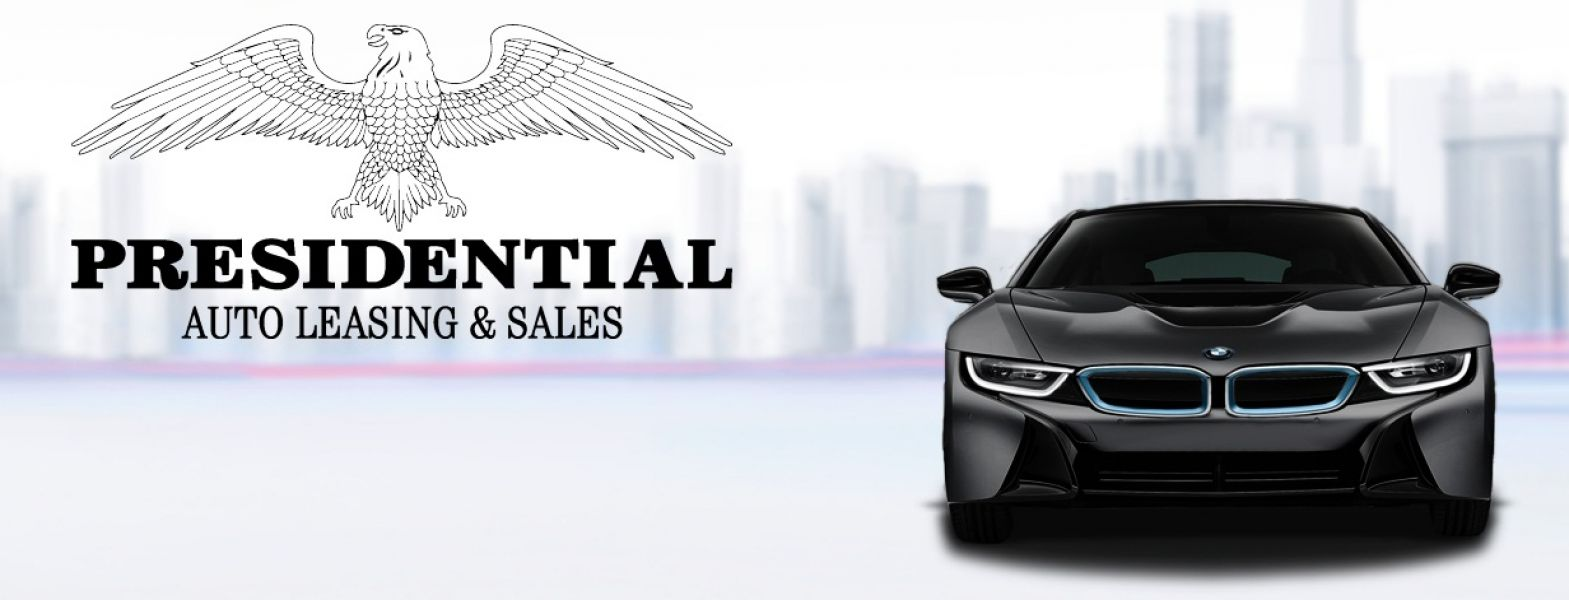 Presidential Auto Leasing Long Island